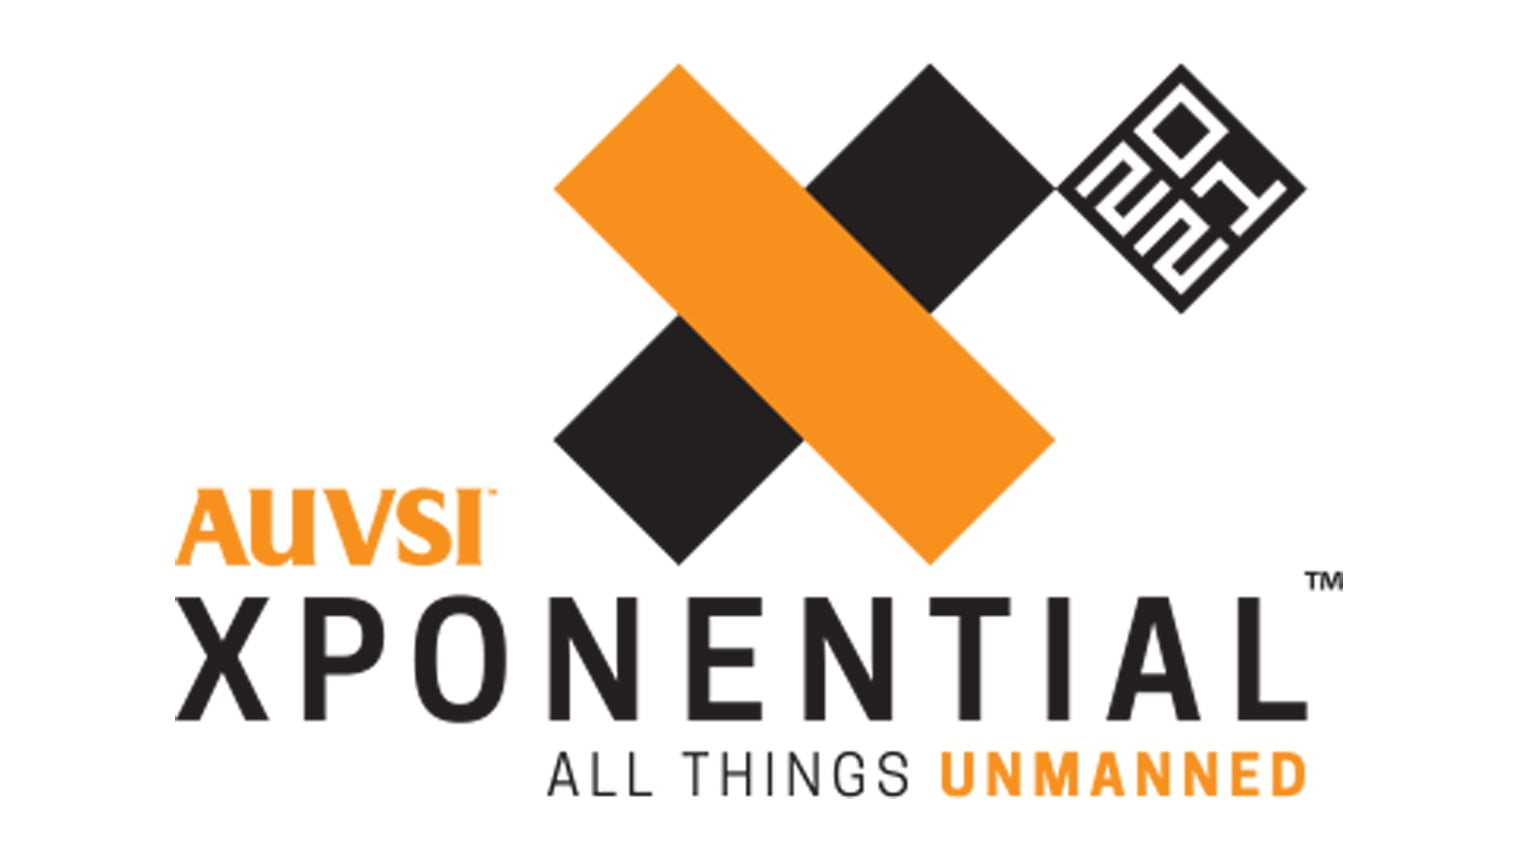 xponential 2020